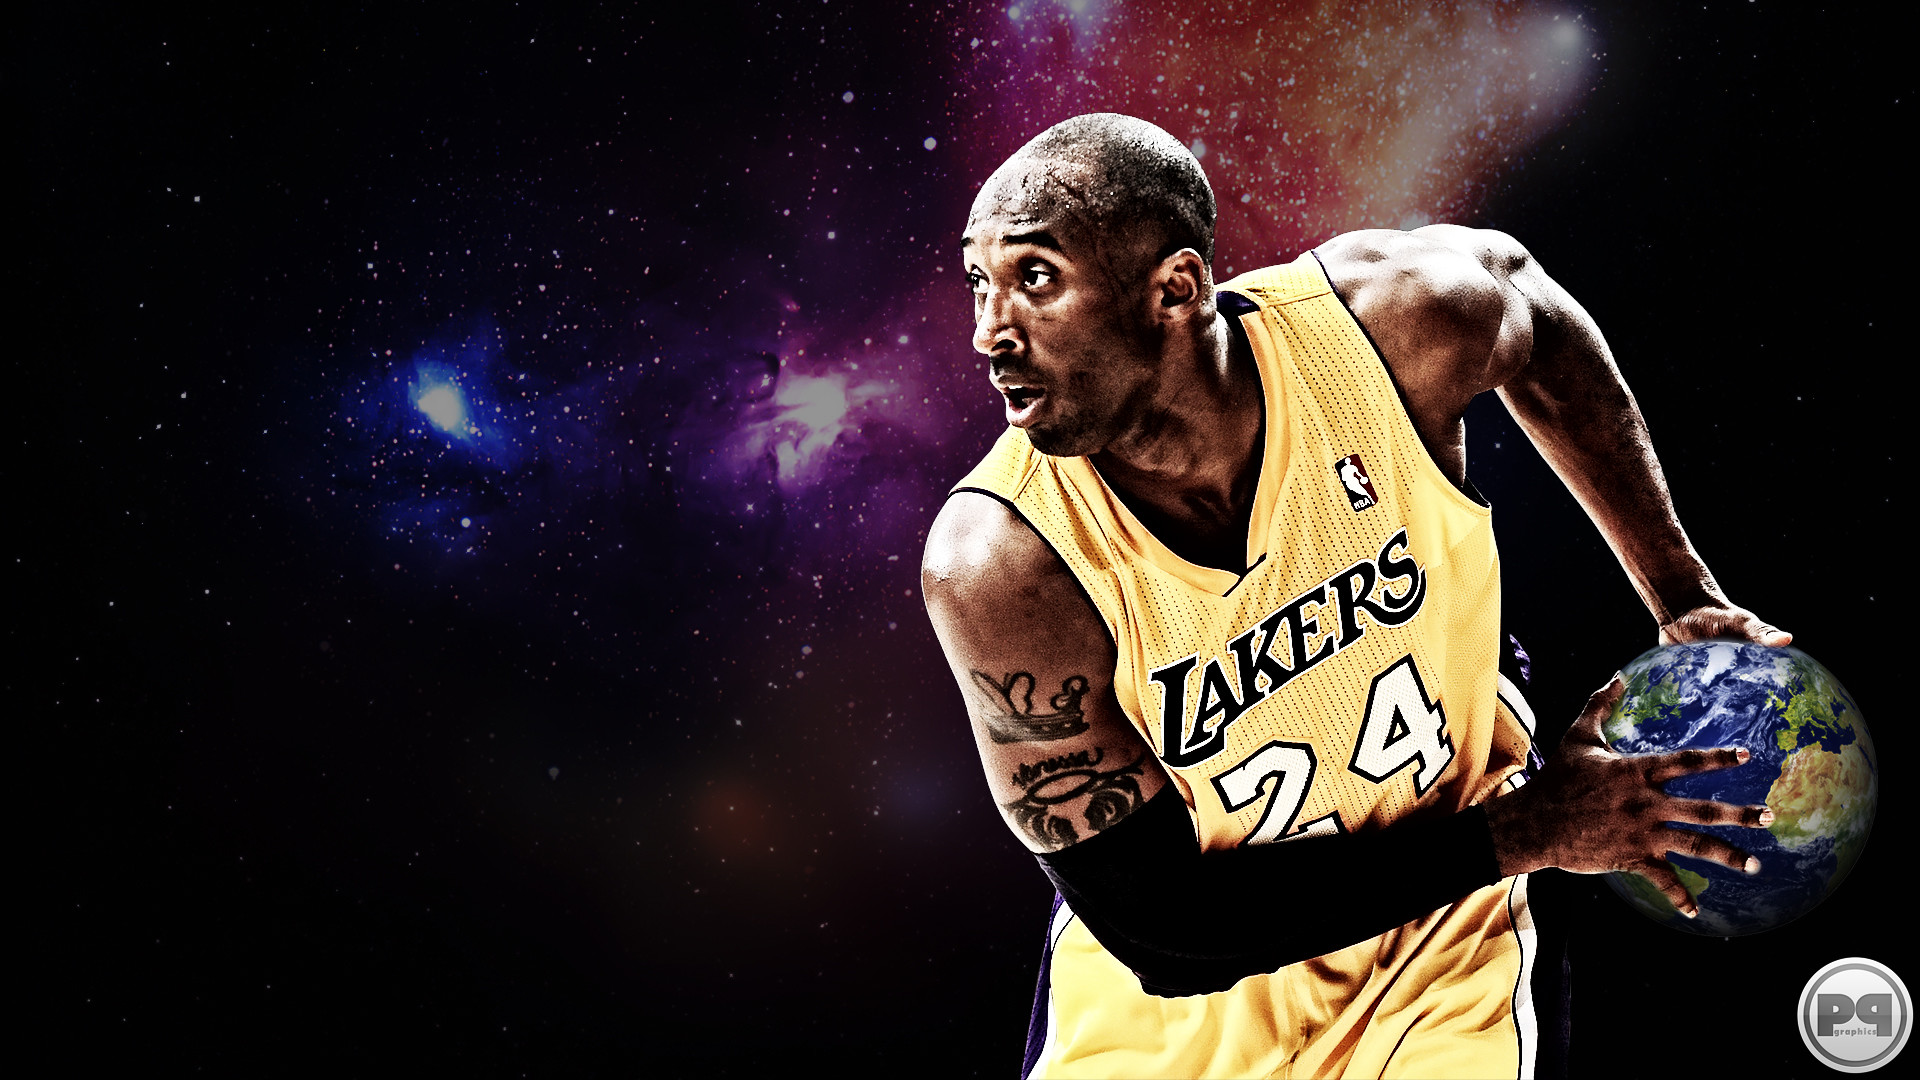 IshaanMishra 116 19 Kobe Bryant Wallpaper By 1920x1200